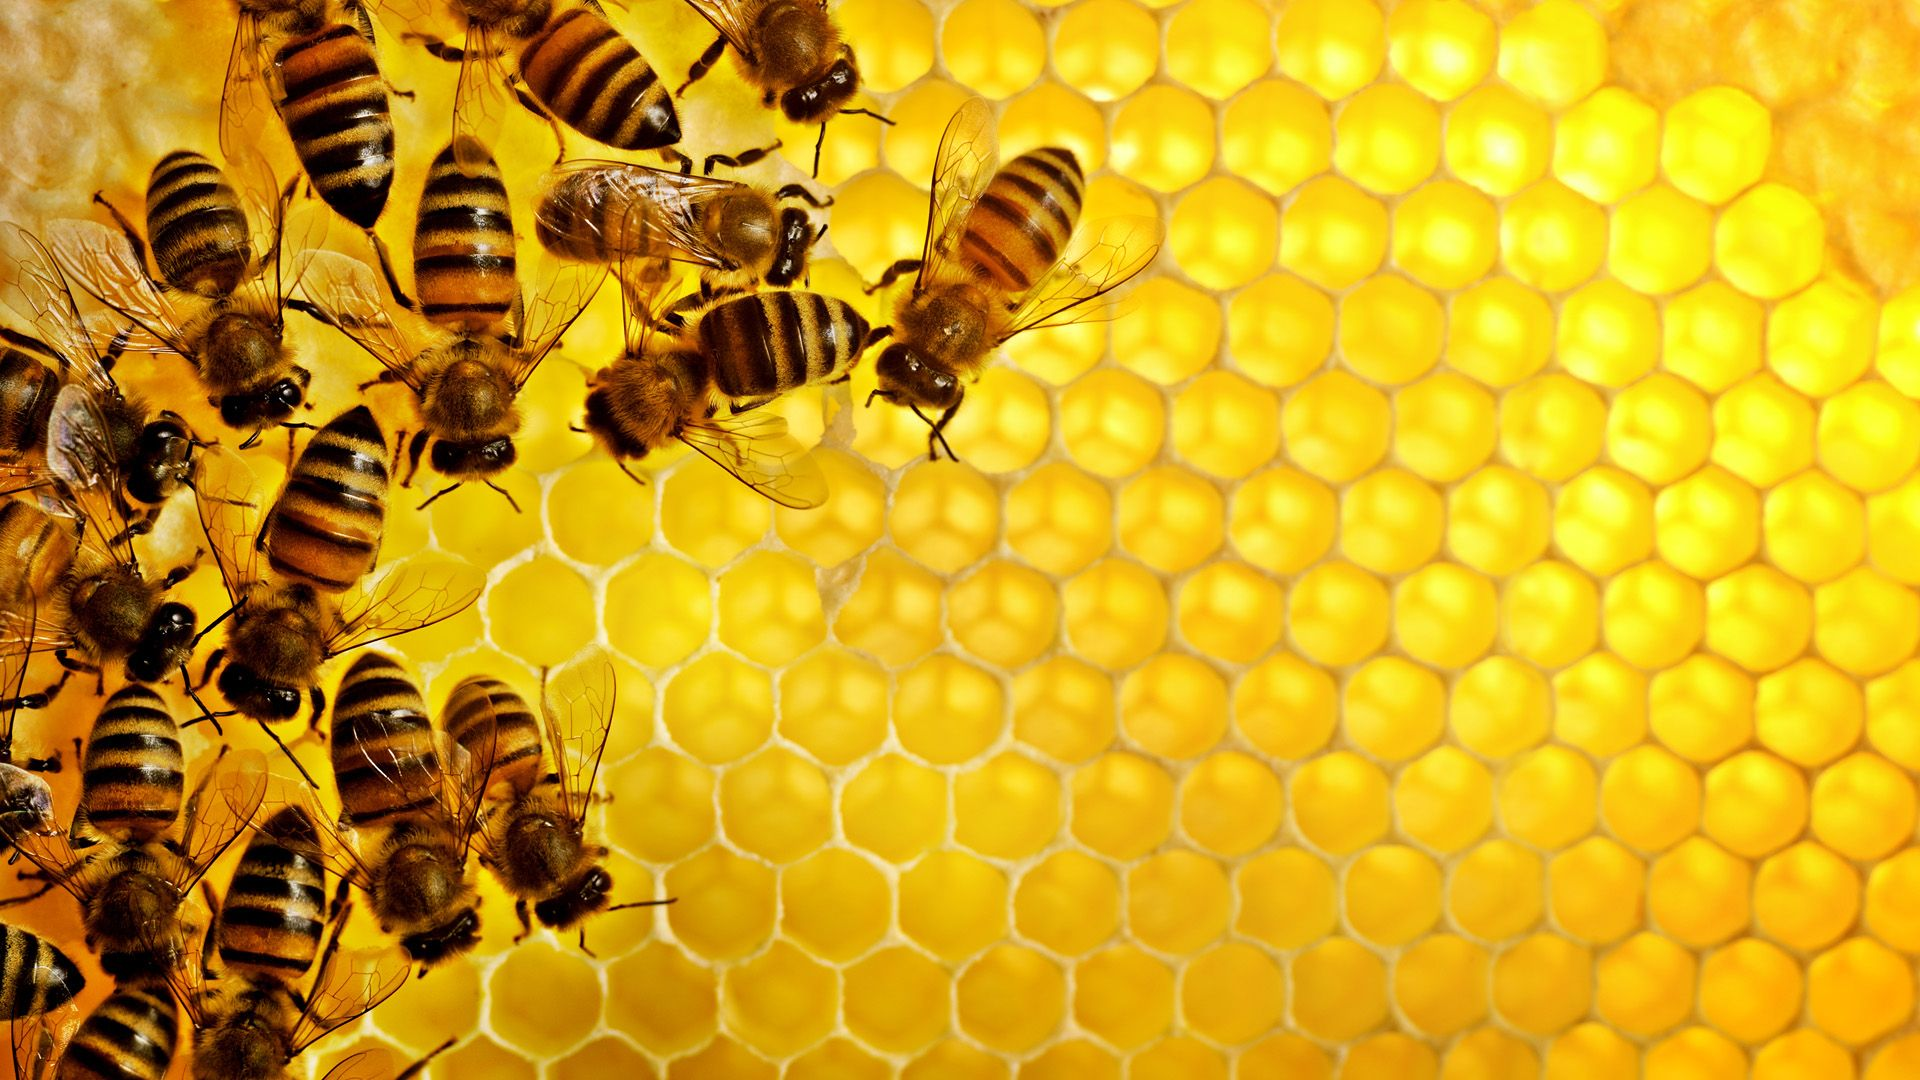 Honey Free Desktop Wallpaper